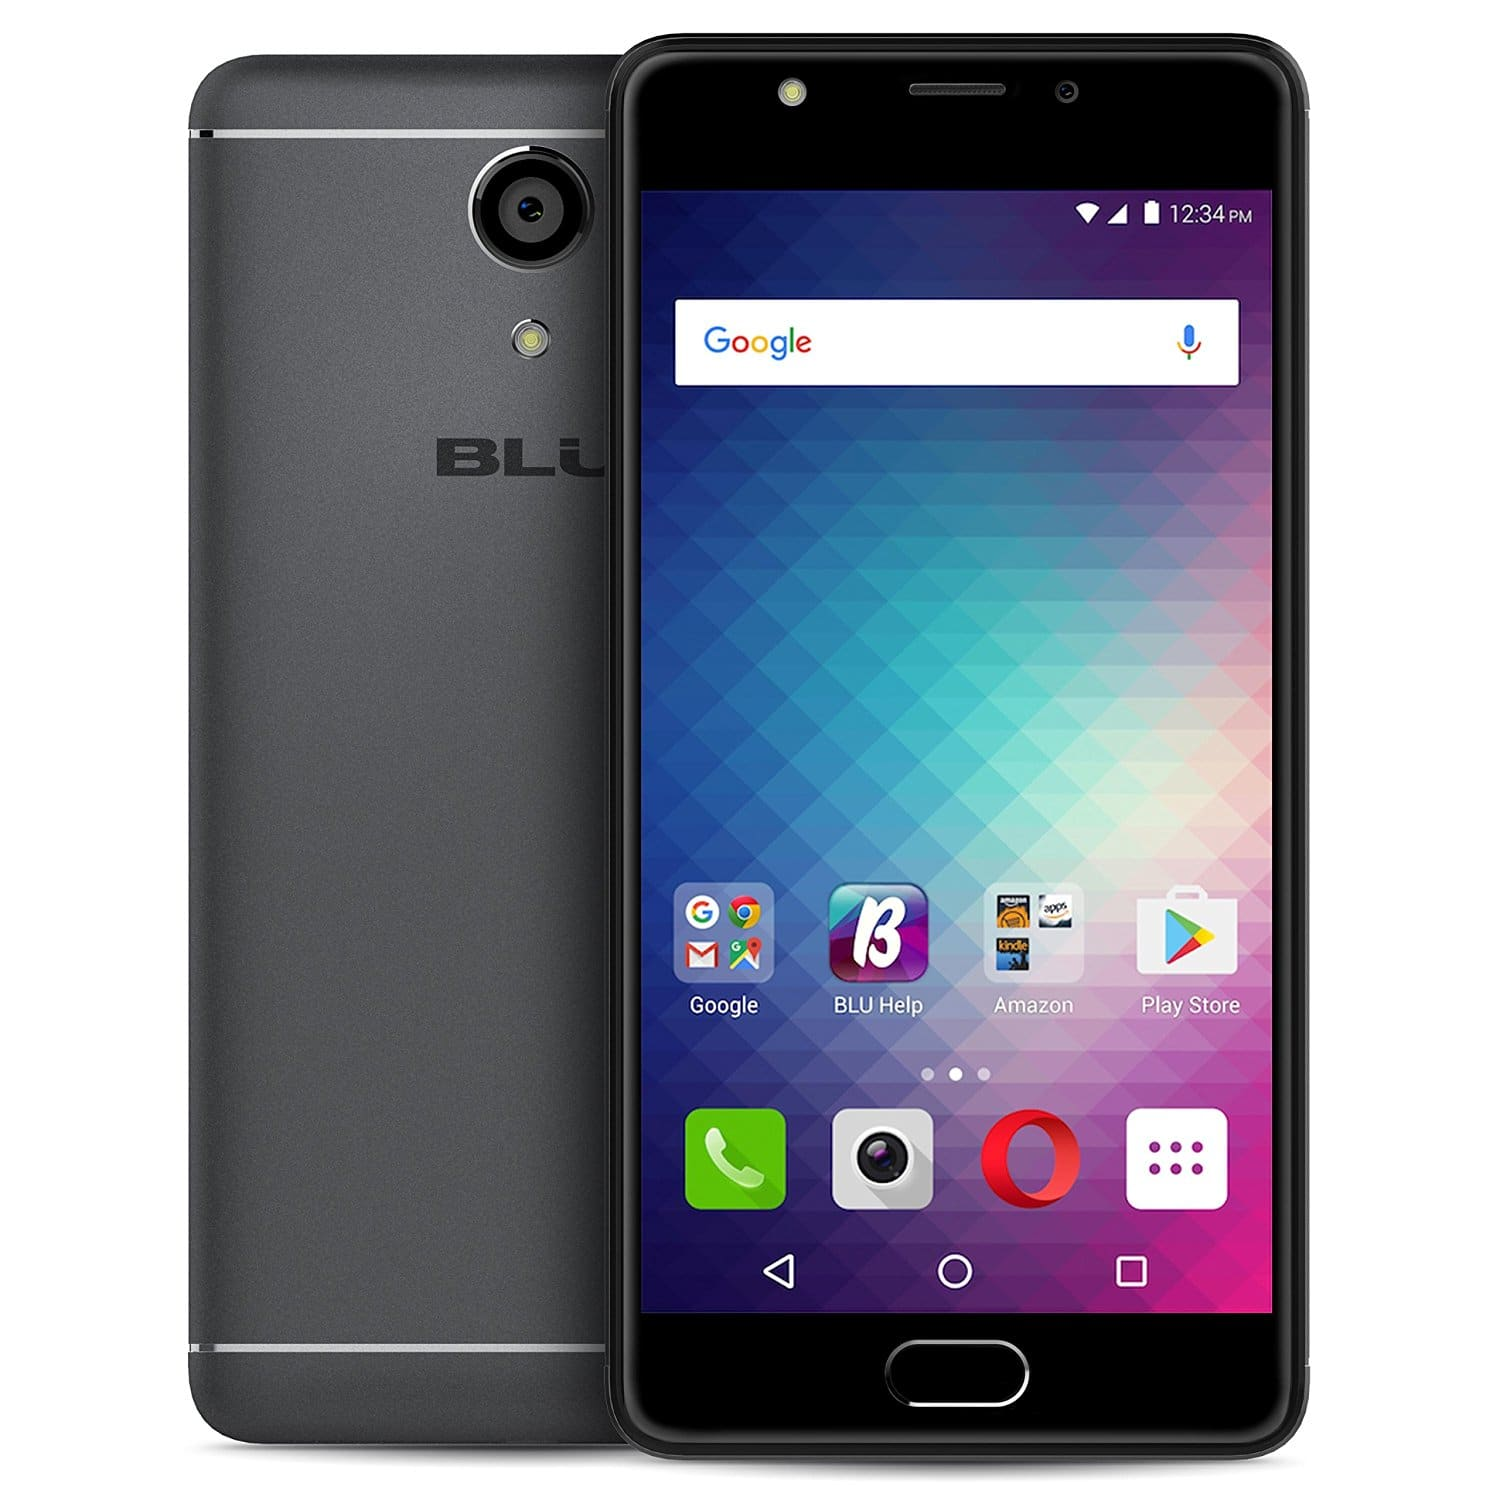 Blu Life One X2, 4GB Ram, 64GB storage, Metal Build, Quick Charge 3.0, 5.2 inch 1080p display $180